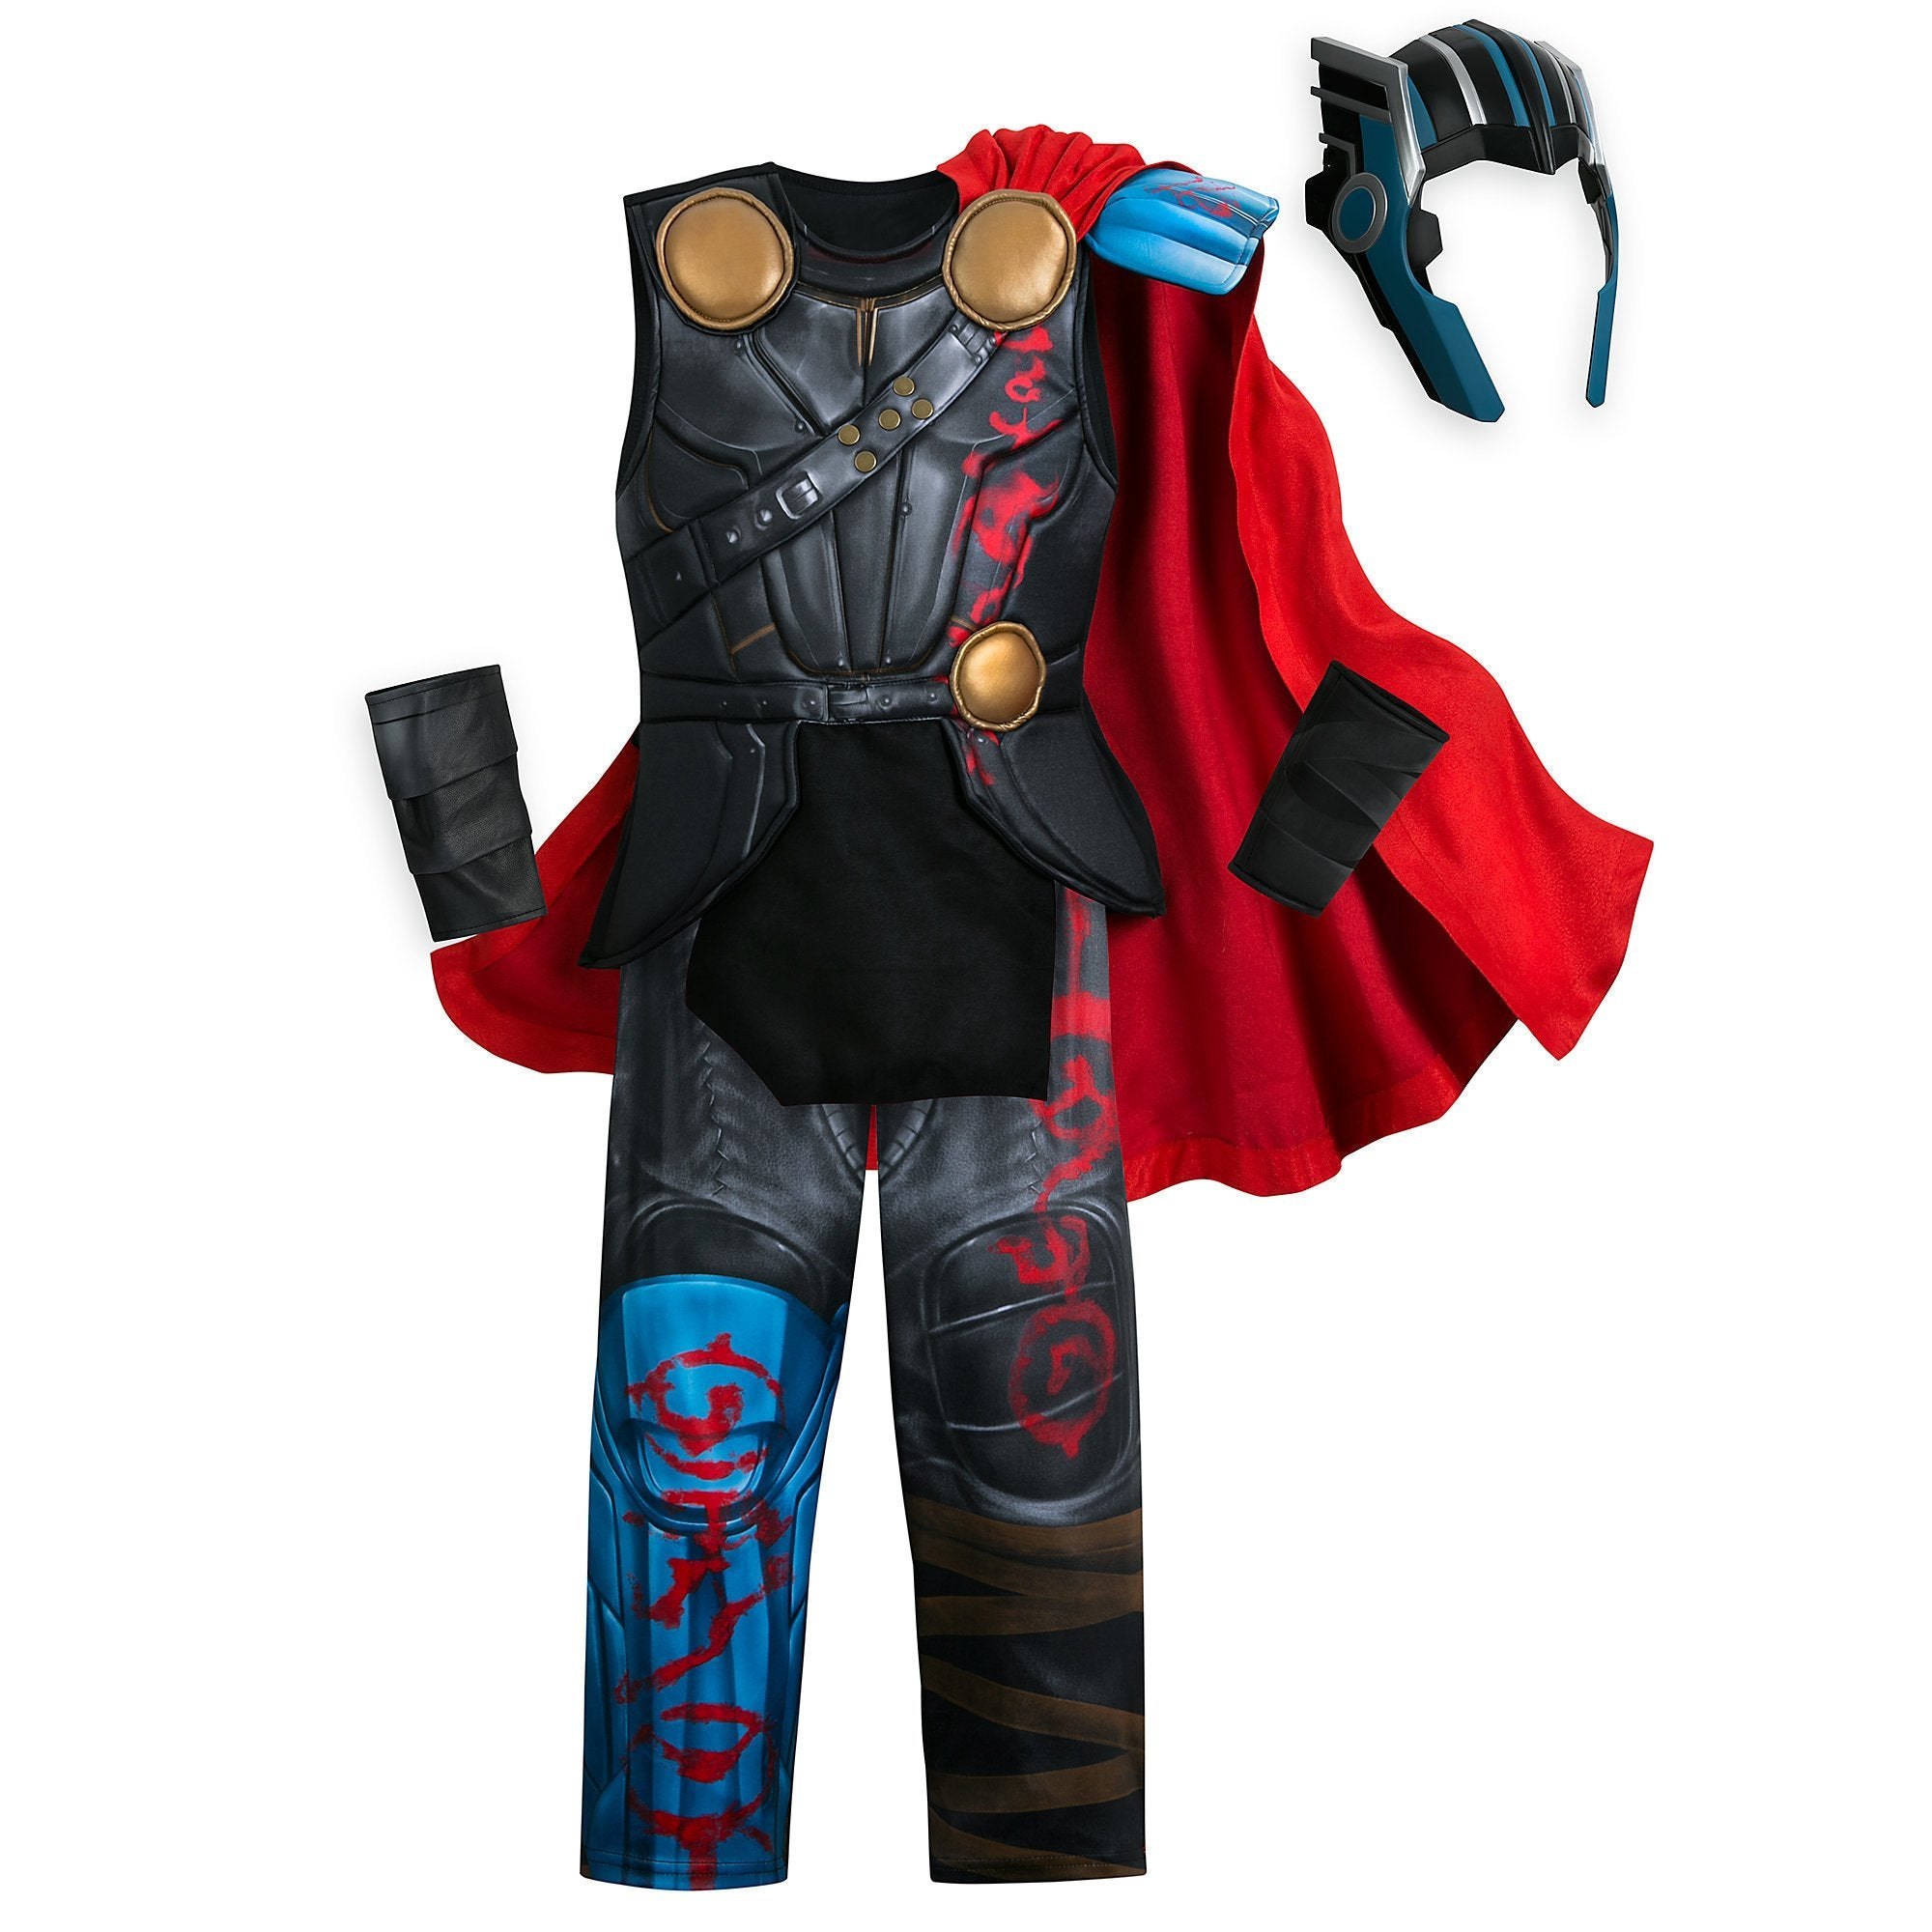 8264bb98aa59 Disney Thor Costume for Kids - Thor: Ragnarok – Pit-a-Pats.com